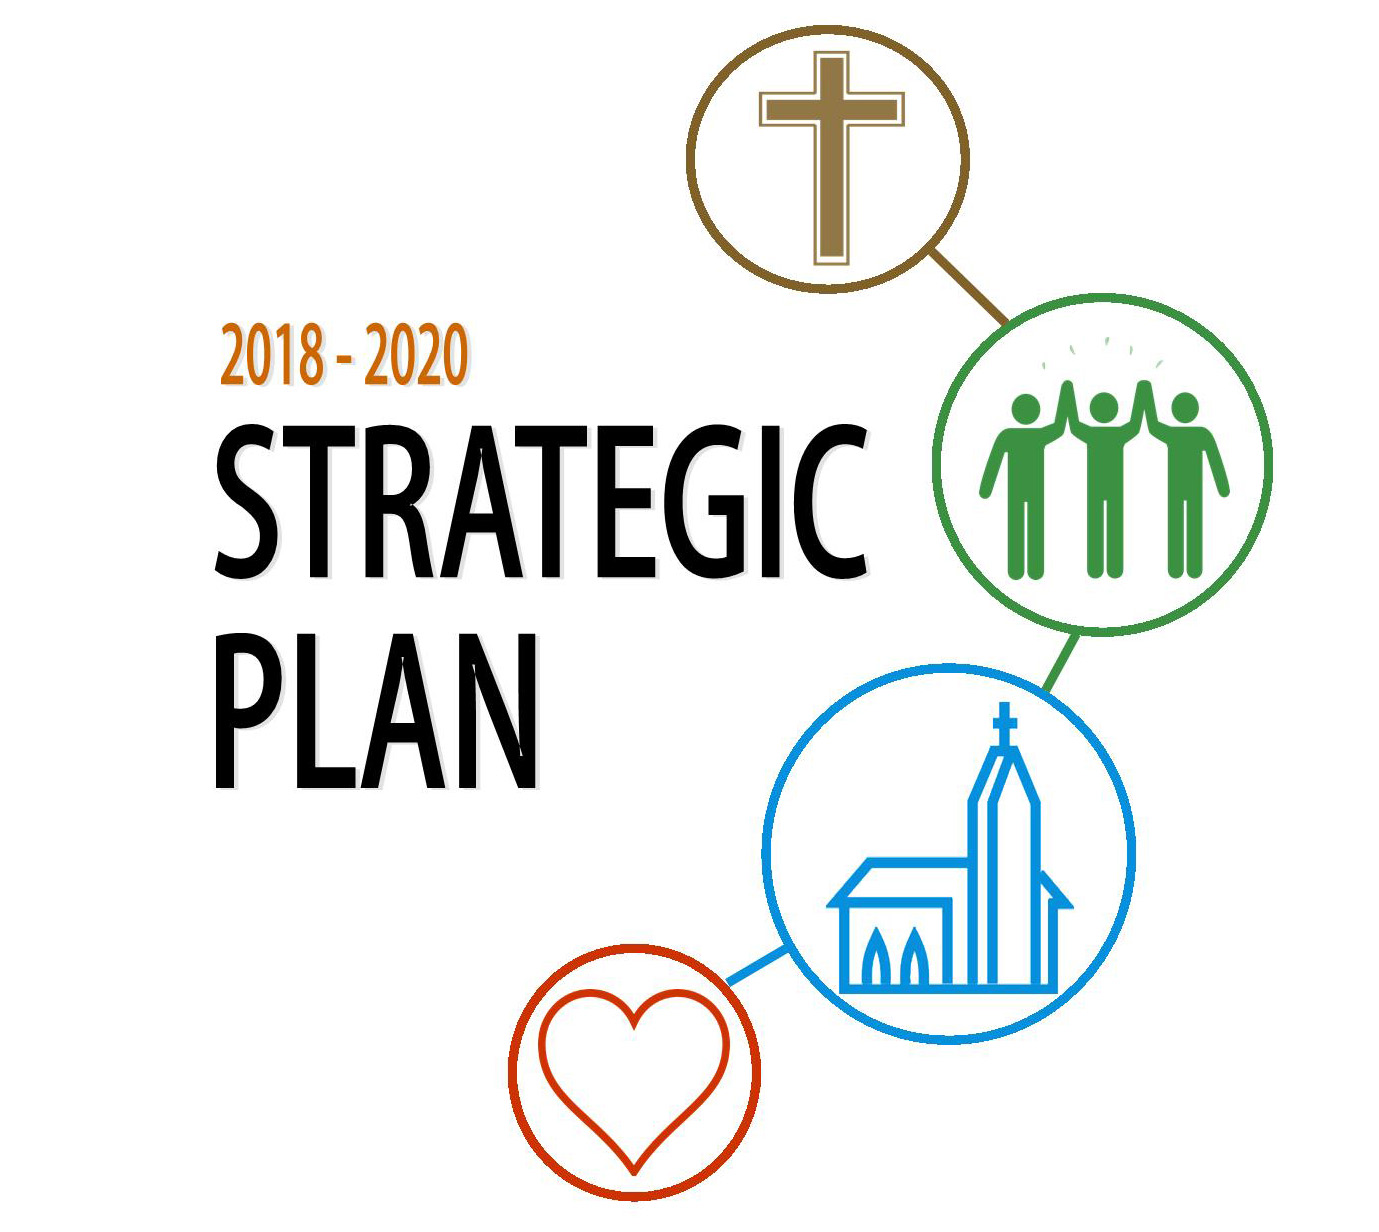 New Strategic Plan 2018 - 2020 graphic.jpg